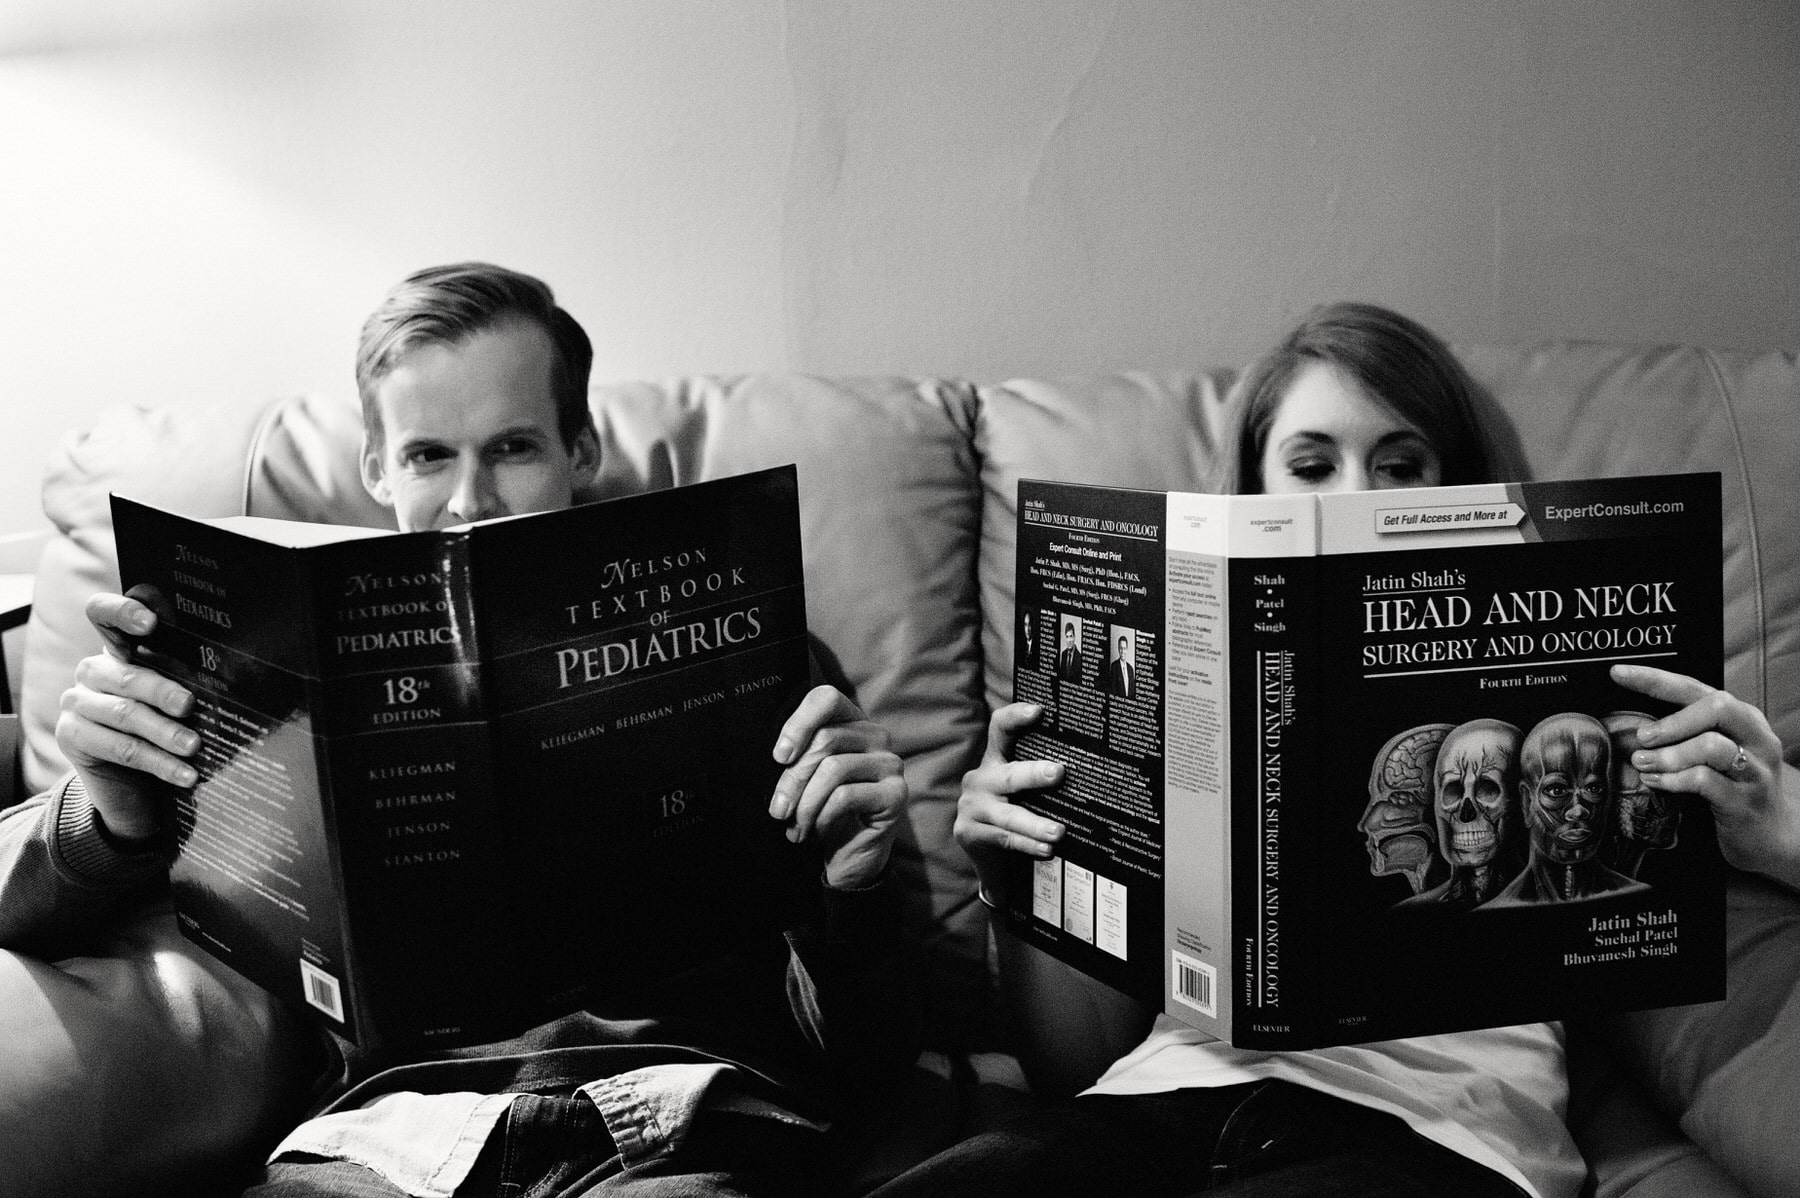 Philadelphia engagement session photo behind books